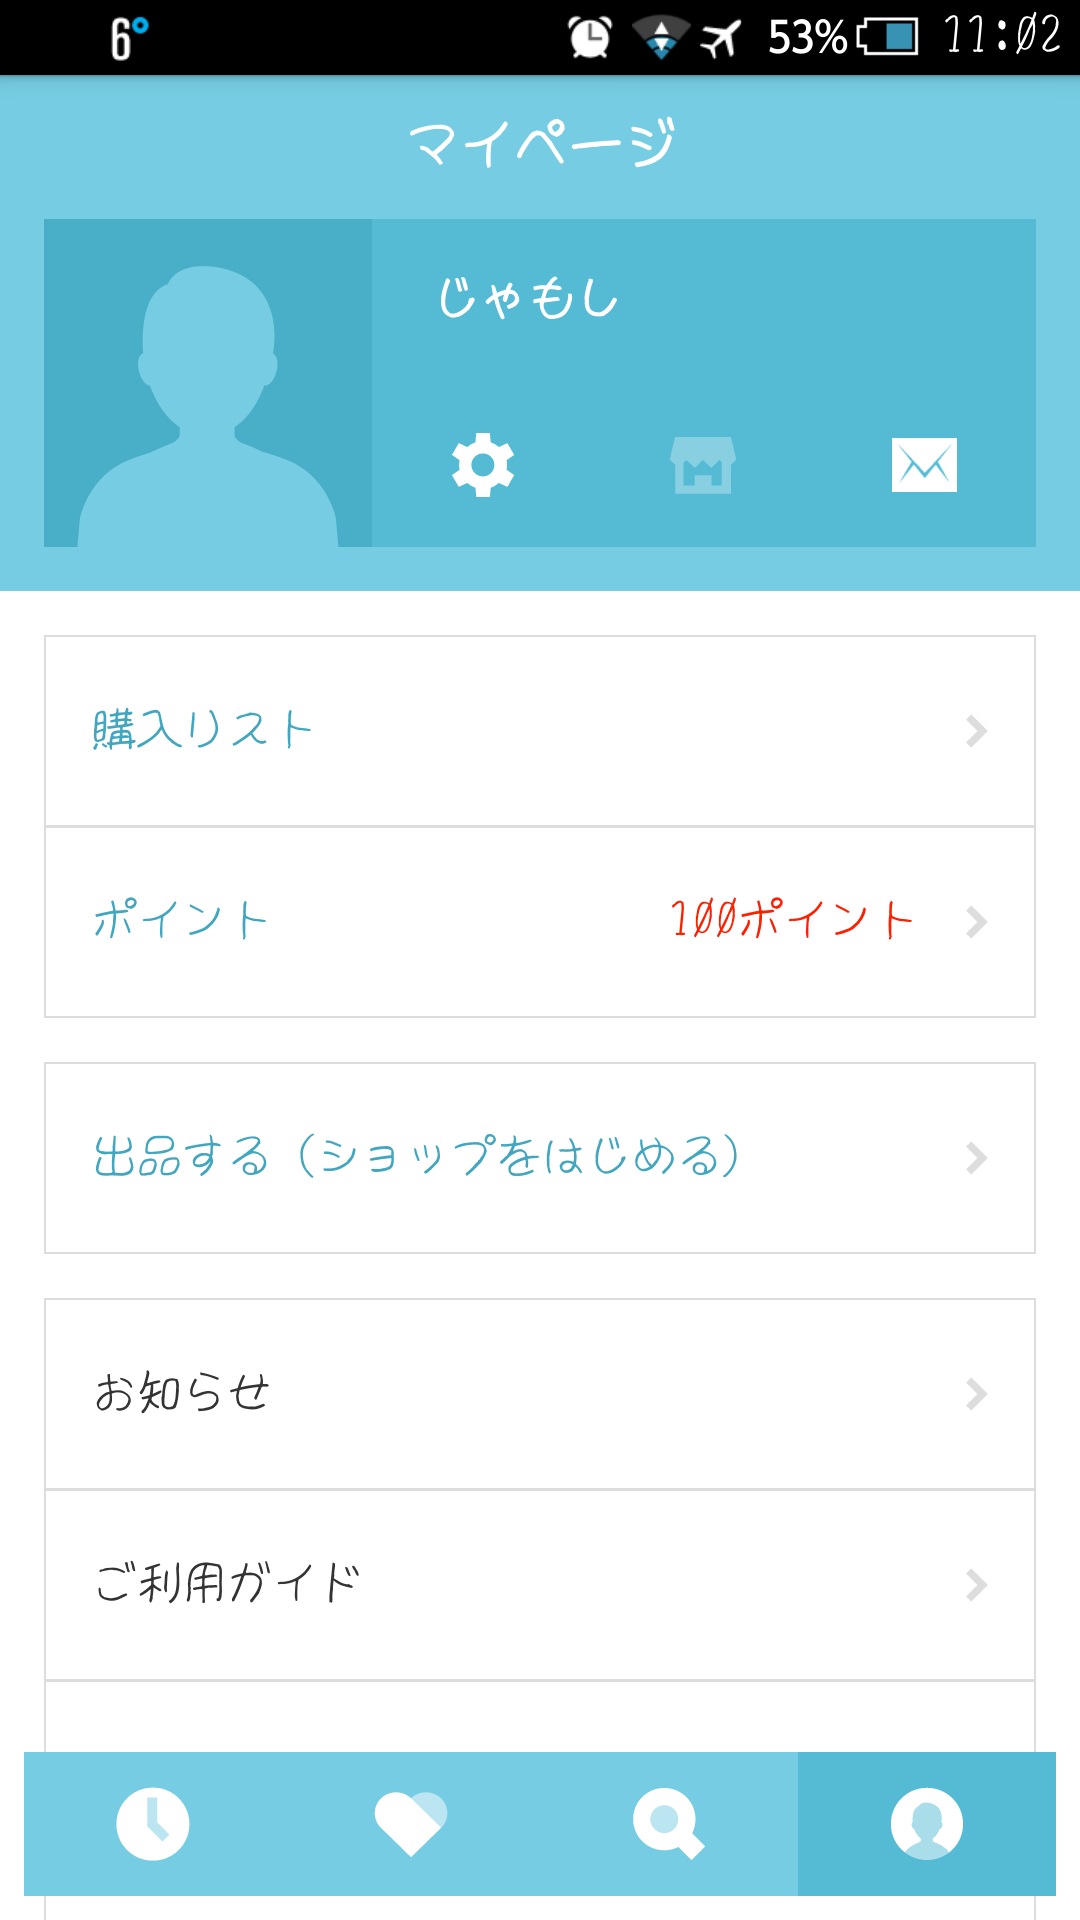 Screenshot_2014-03-16-11-02-57.png